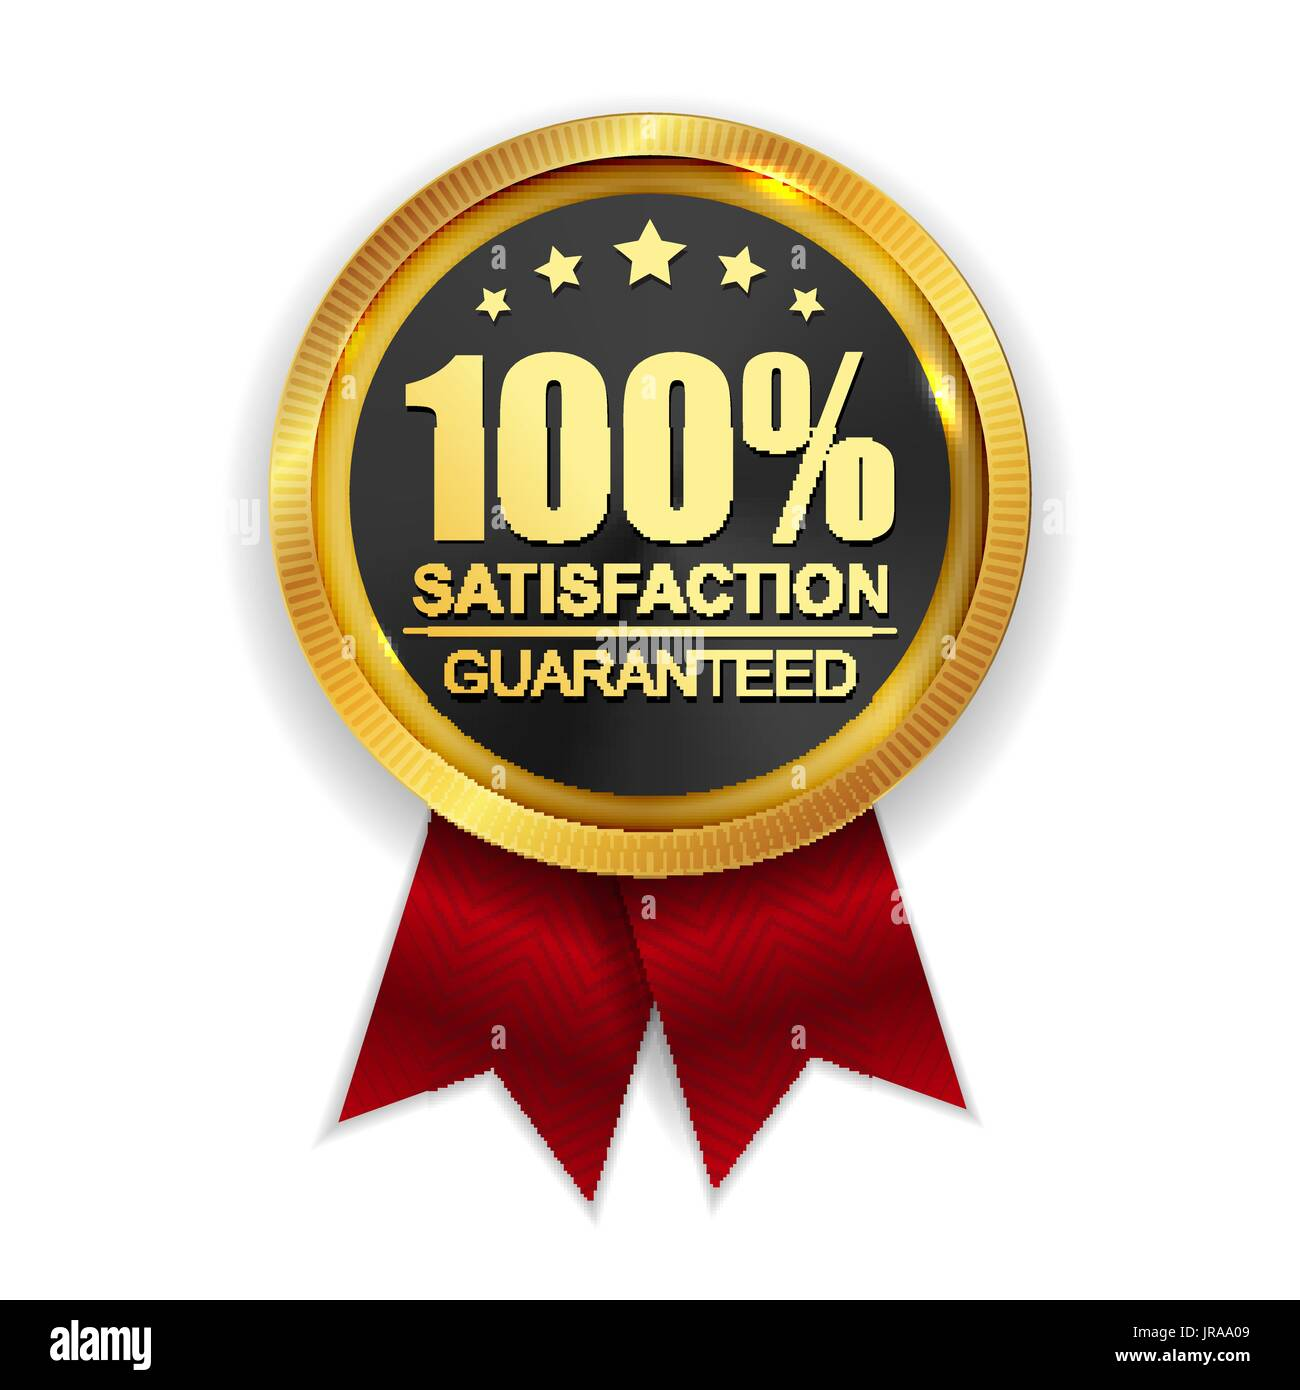 100 satisfaction guaranteed golden medal label icon seal sign stock rh alamy com 100 satisfaction guarantee logo free 100 satisfaction guarantee logo